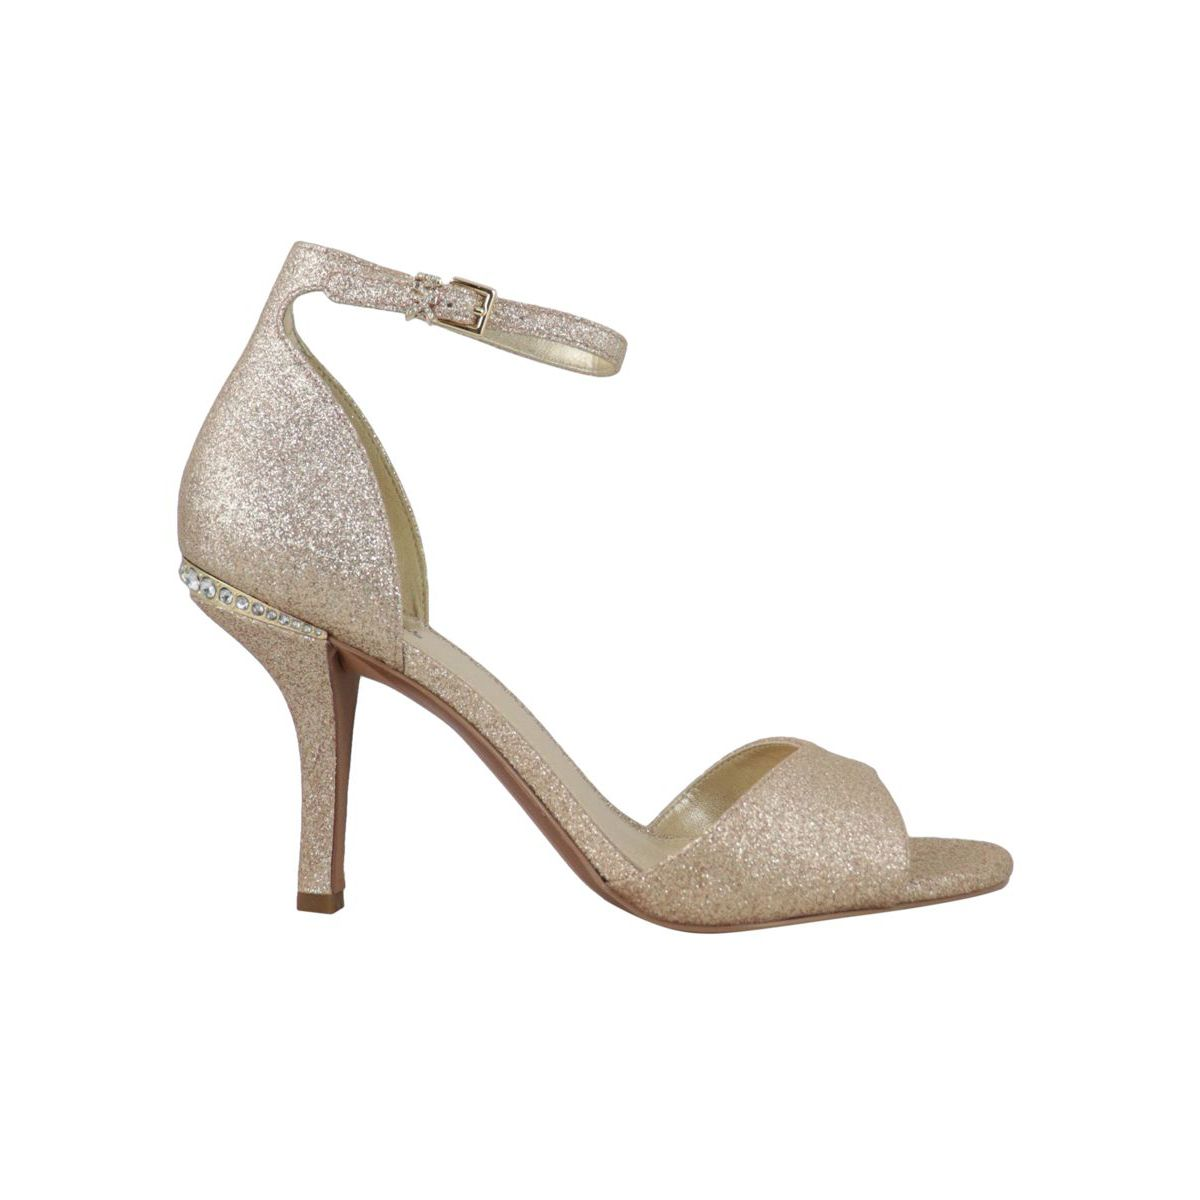 MALINDA lurex leather heeled sandal Gold Michael Kors